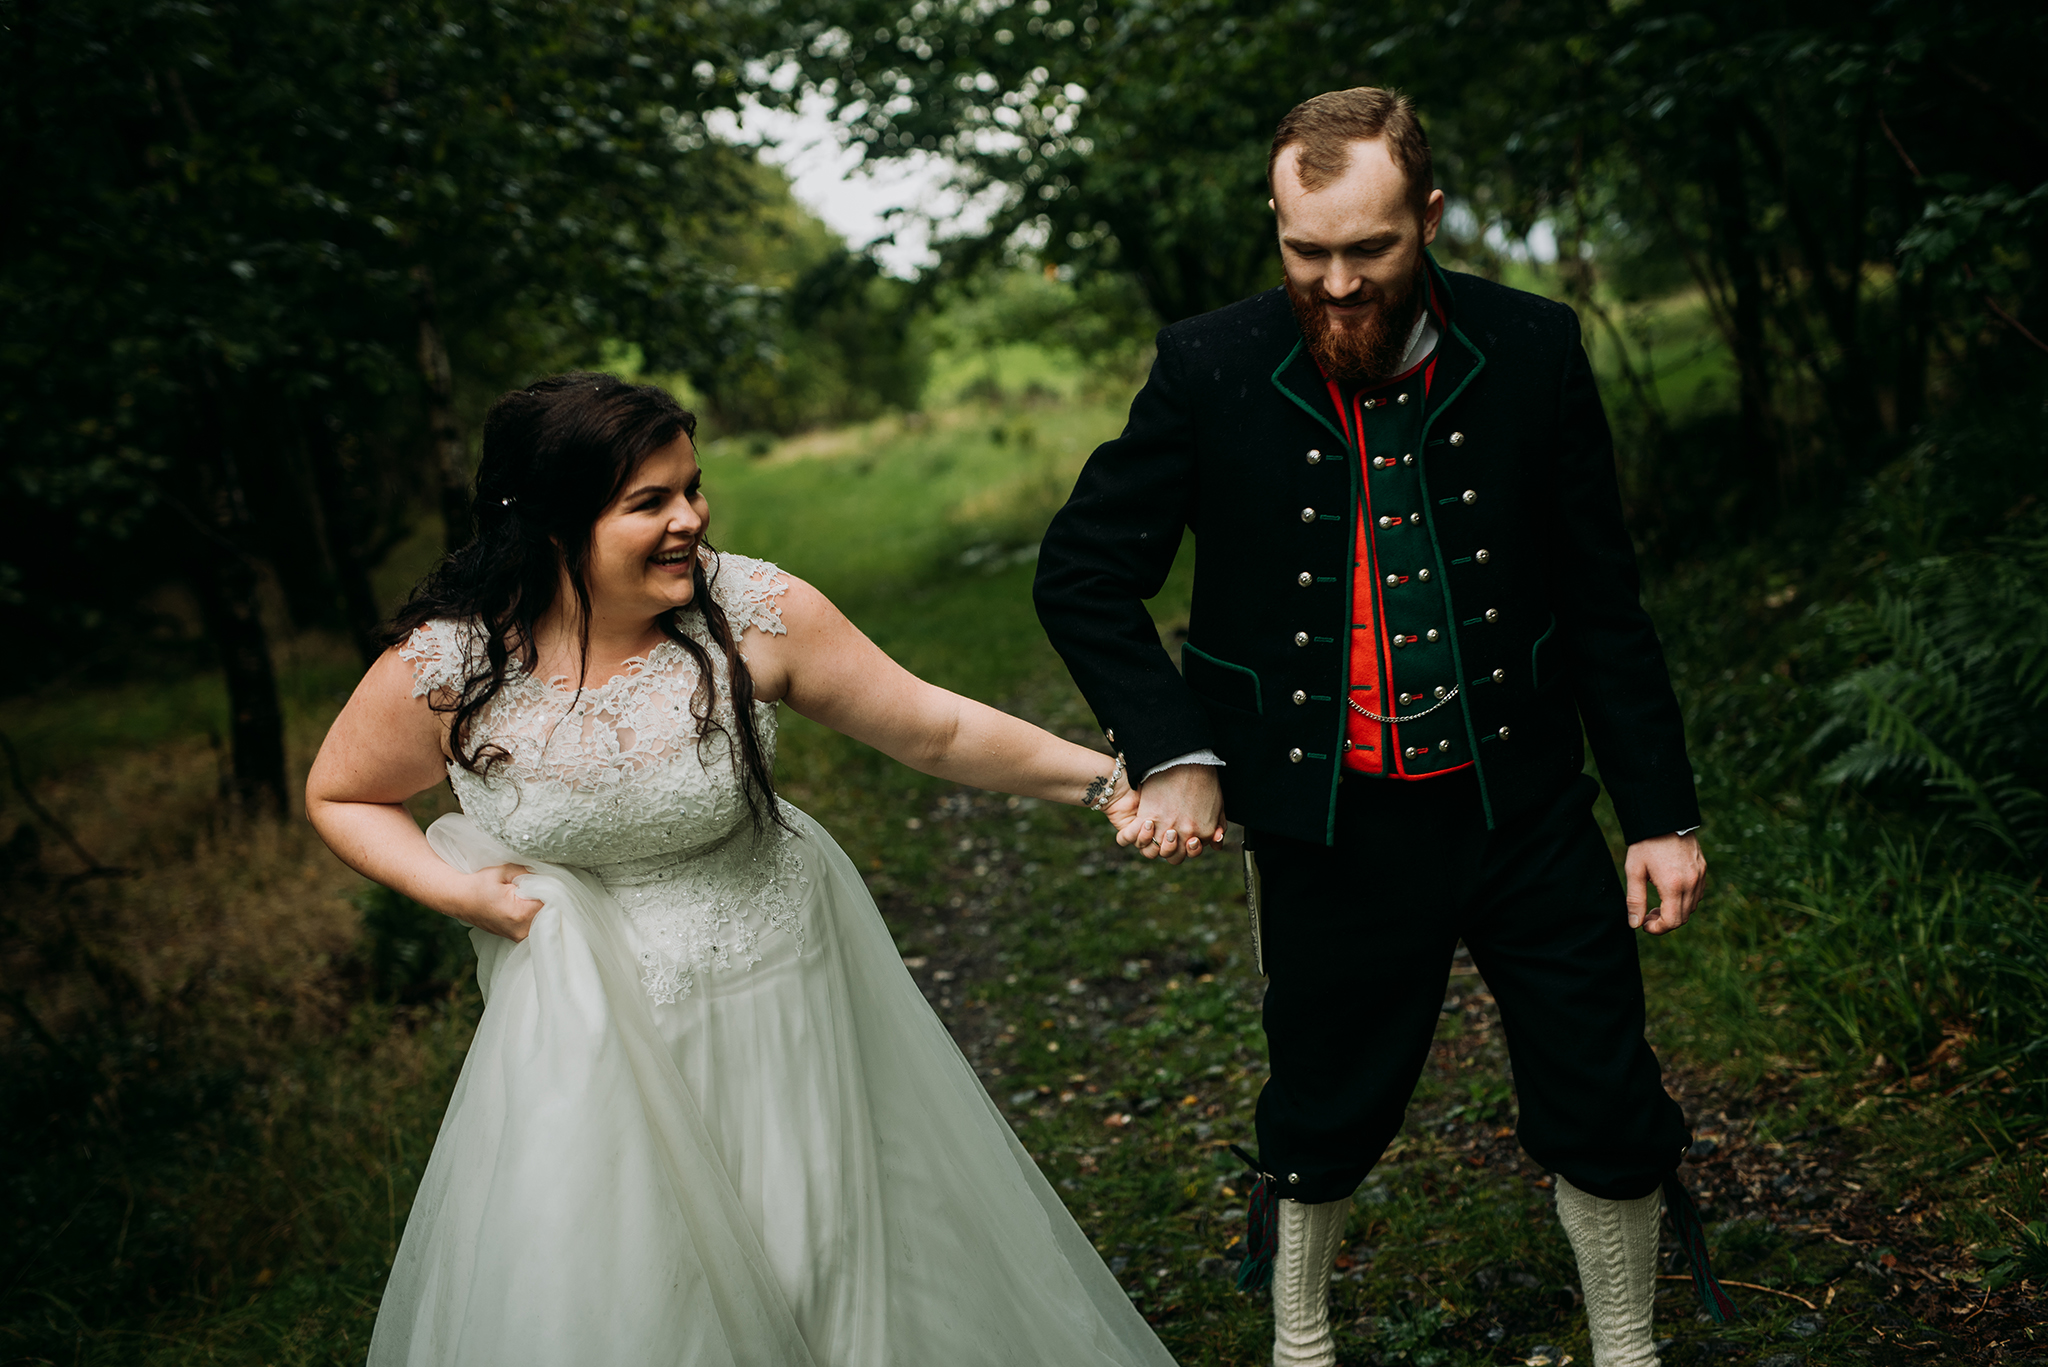 Norway wedding and elopement photographer - 85.jpg